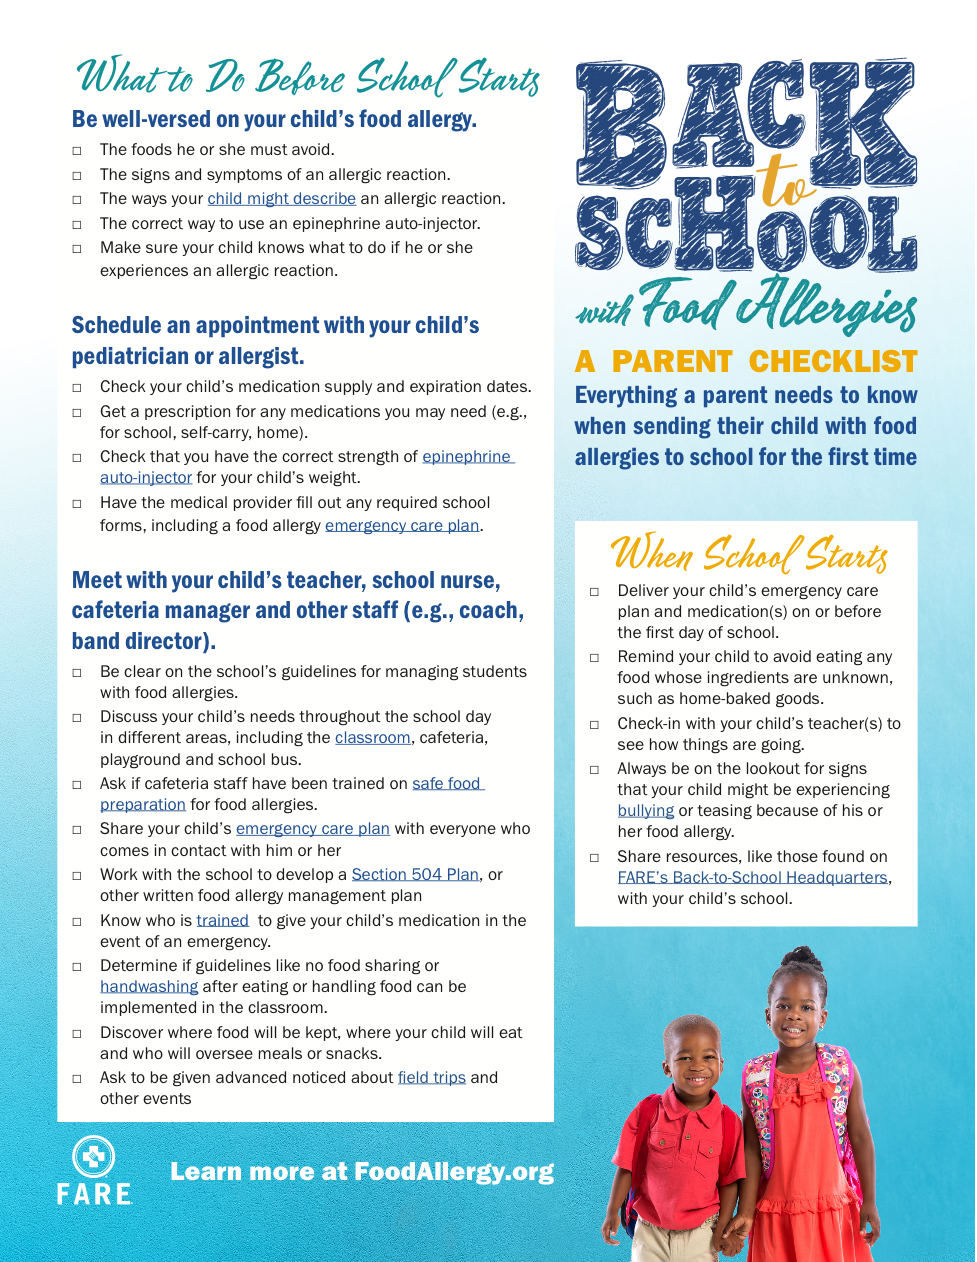 Going back to school with Food Allergies